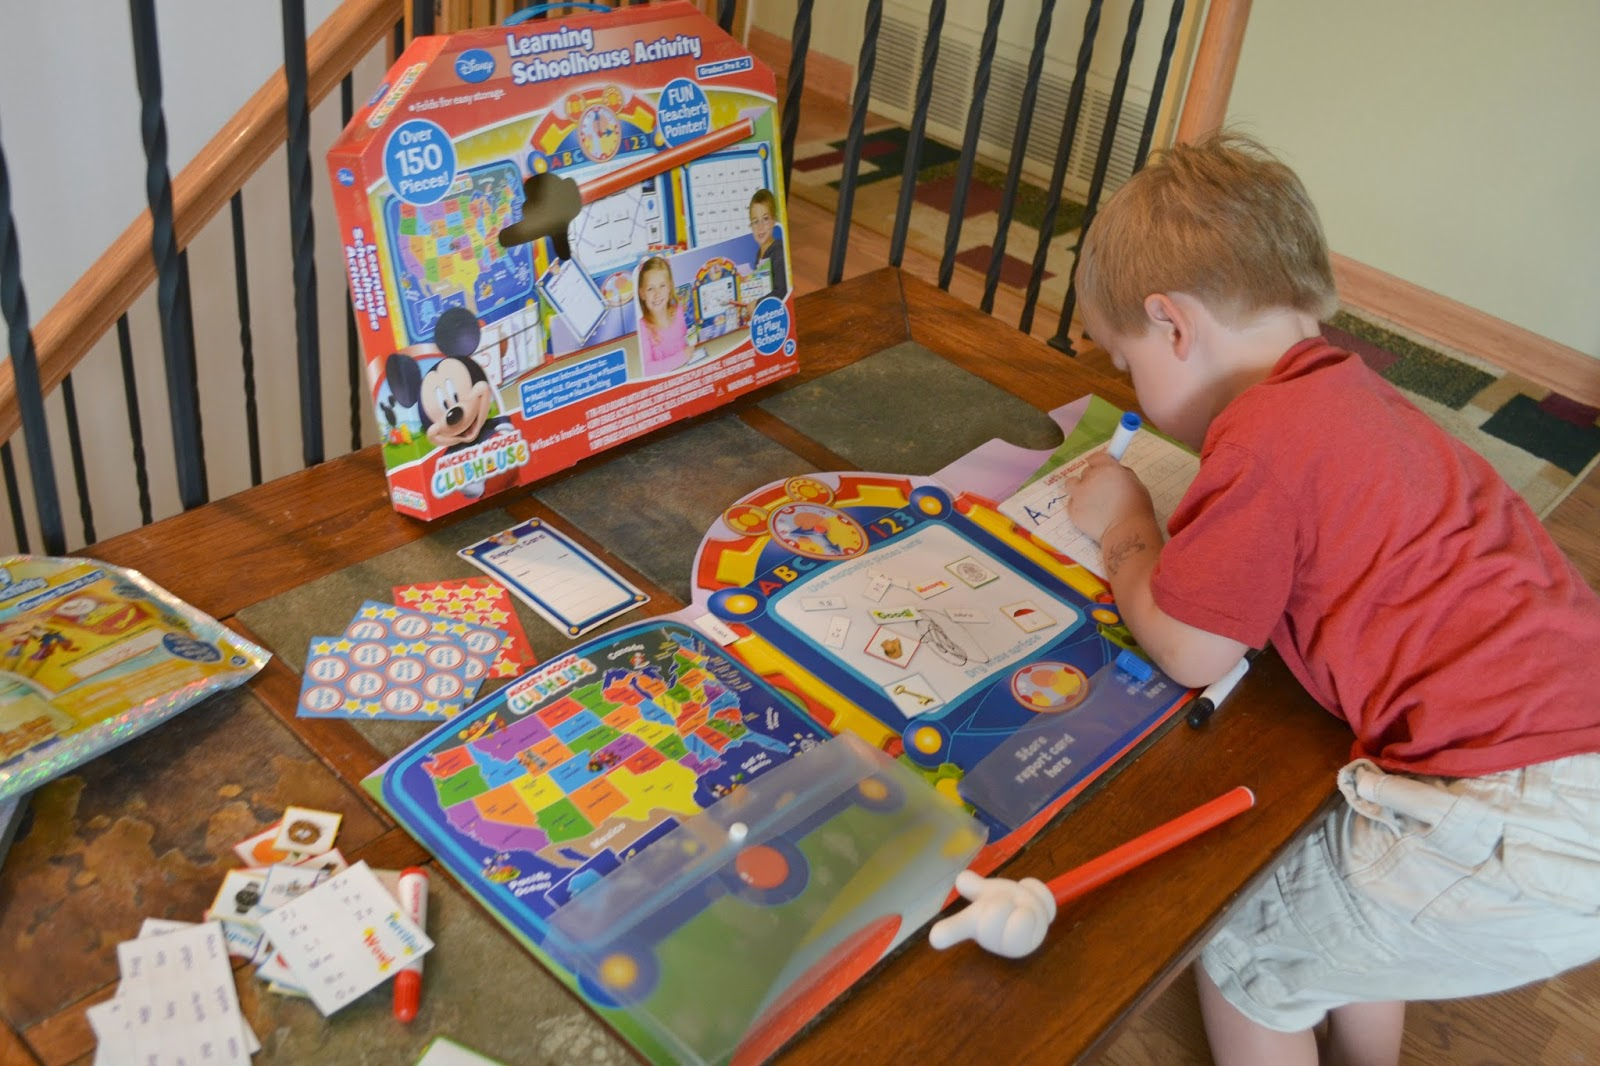 Disney Junior; Disney Junior games; Jake and the Neverland Pirates; Disney Mickey Mouse Clubhouse; Sofia the First.  Disney Junior Back to School Activities.  Breaking the Summer Slide with Fun!  Education for Preschool.